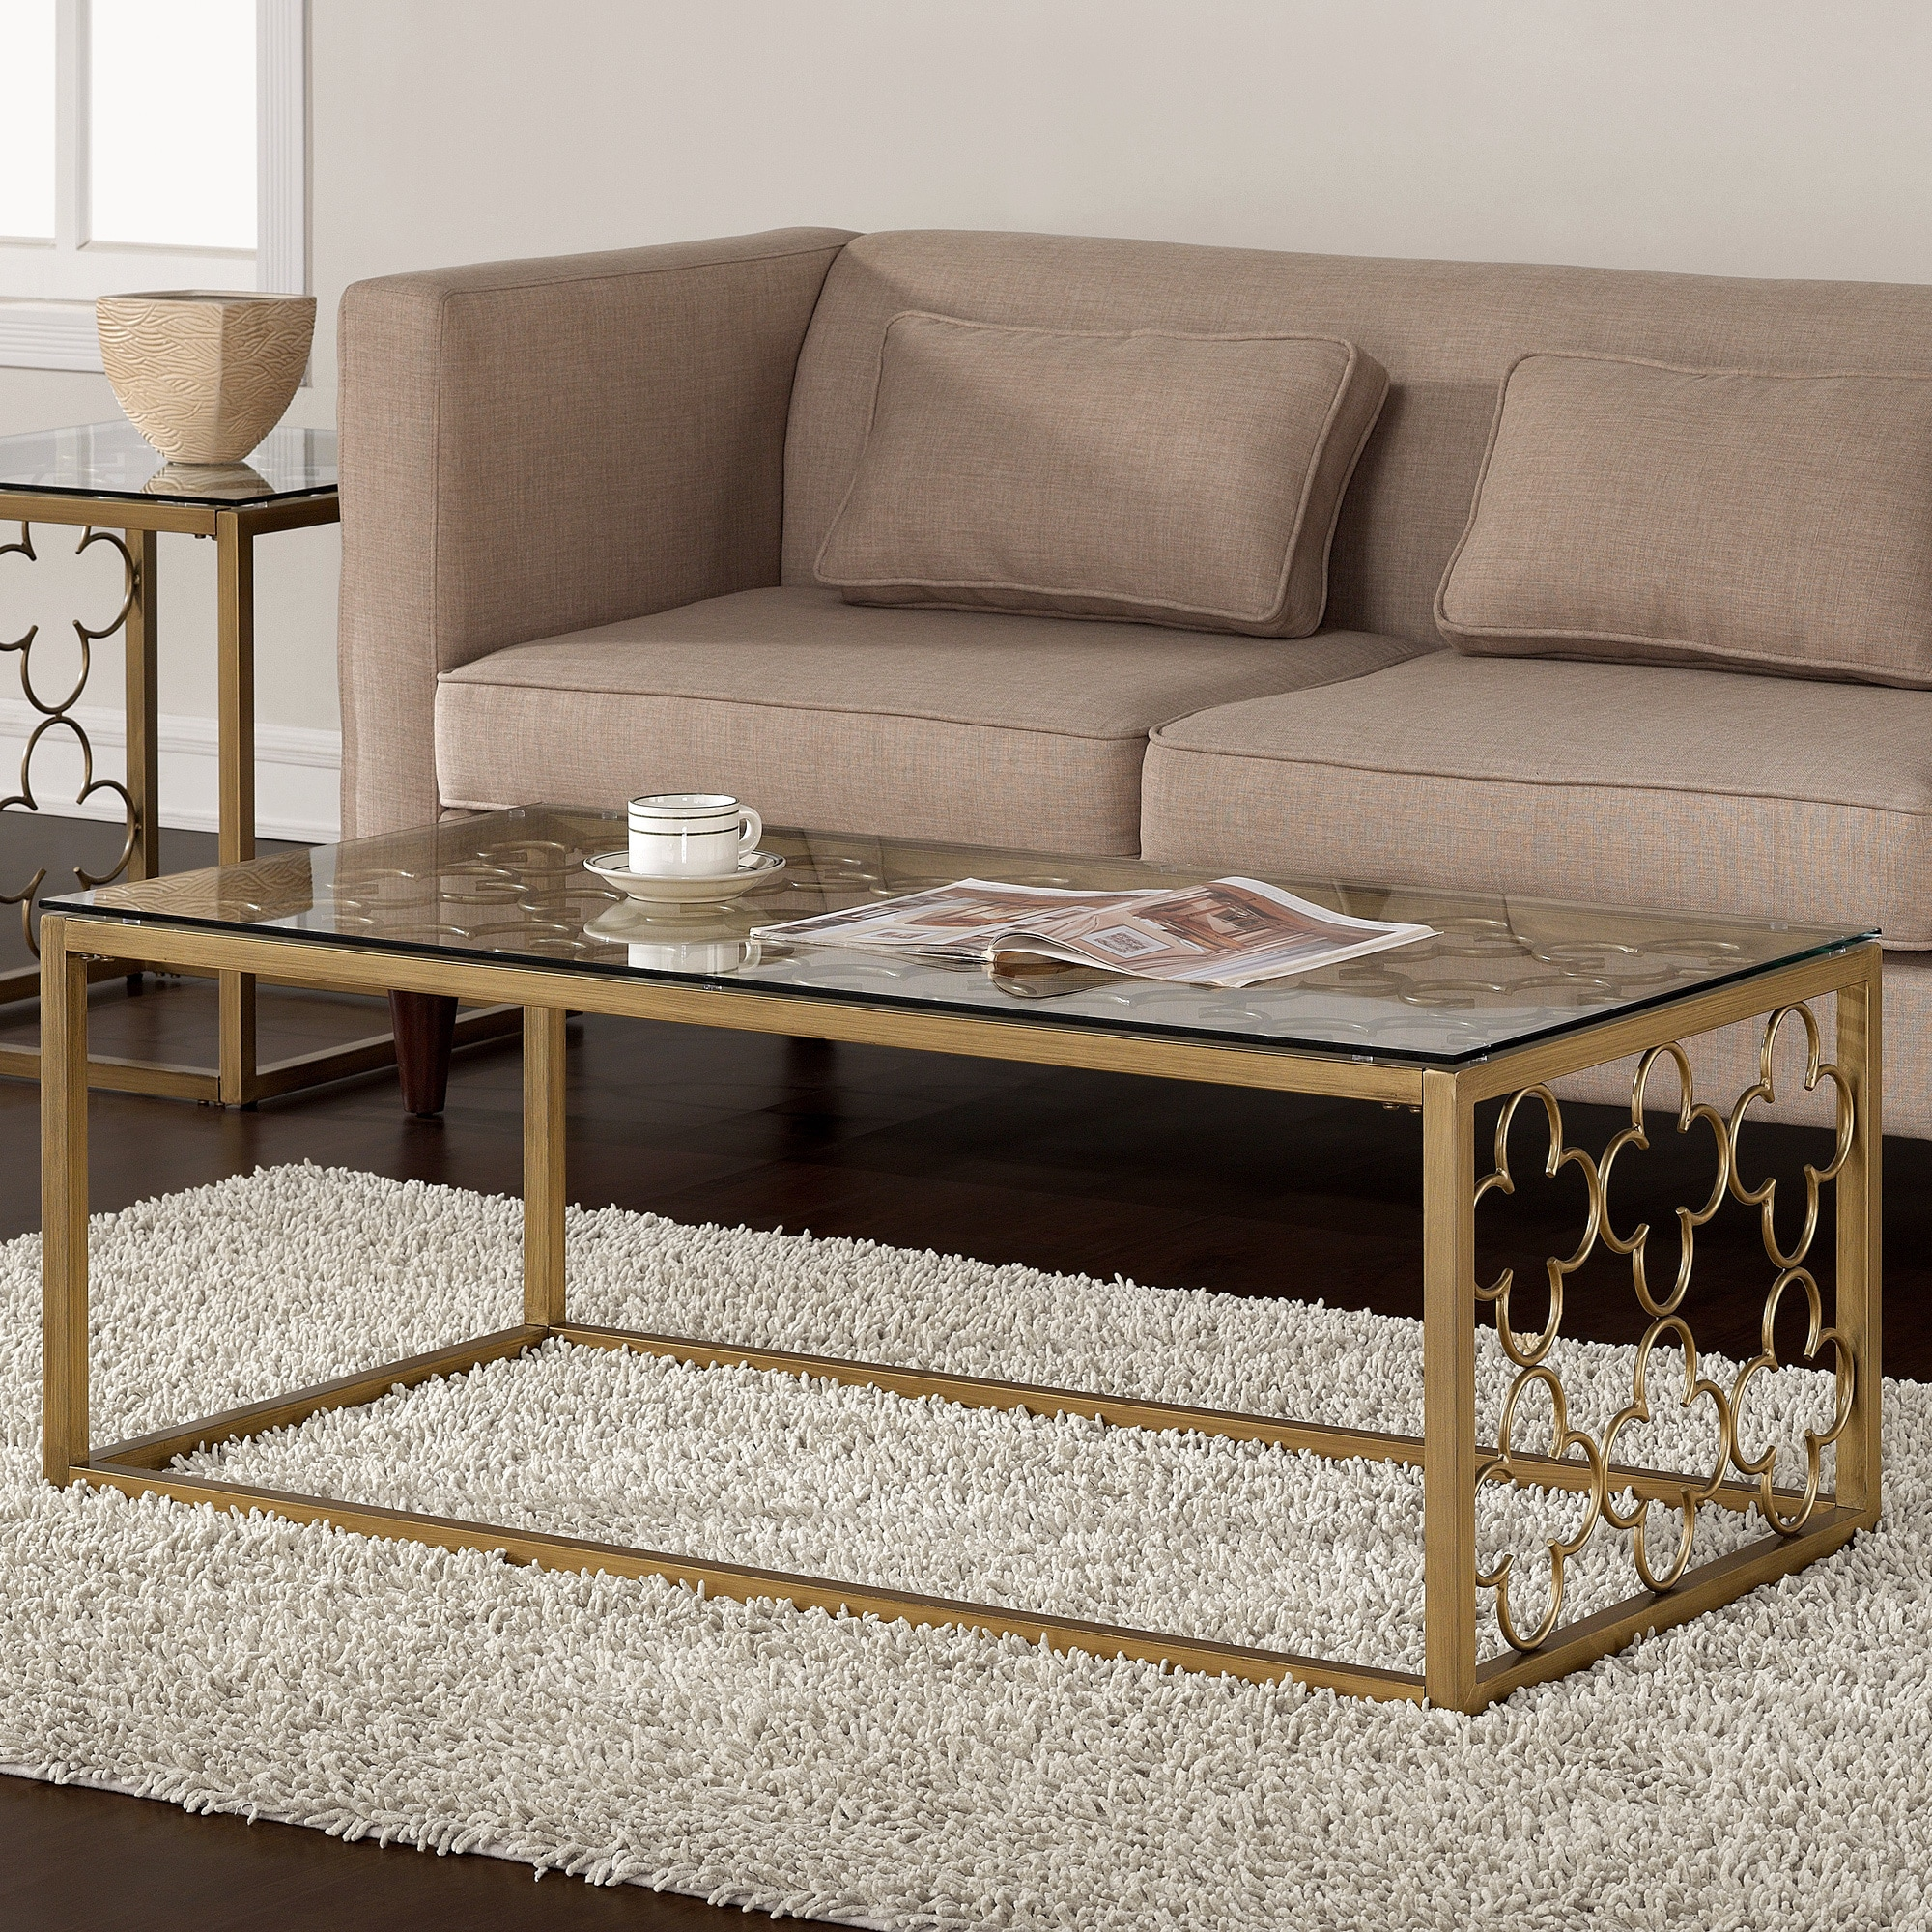 Quatrefoil Goldtone Metal and Glass Coffee Table, Yellow